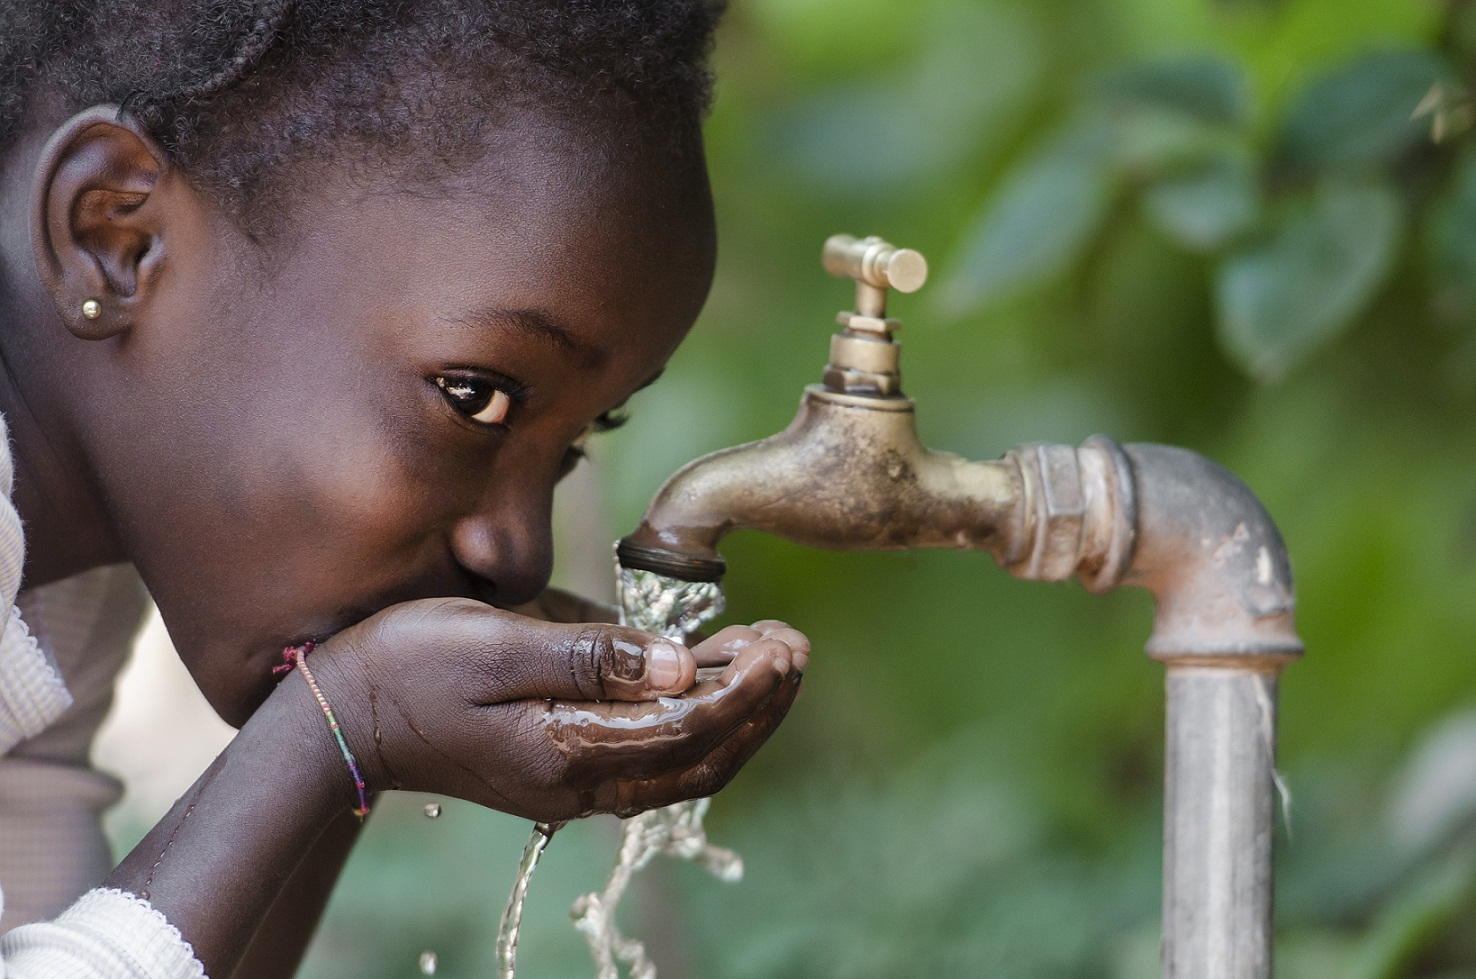 African girl drinking water